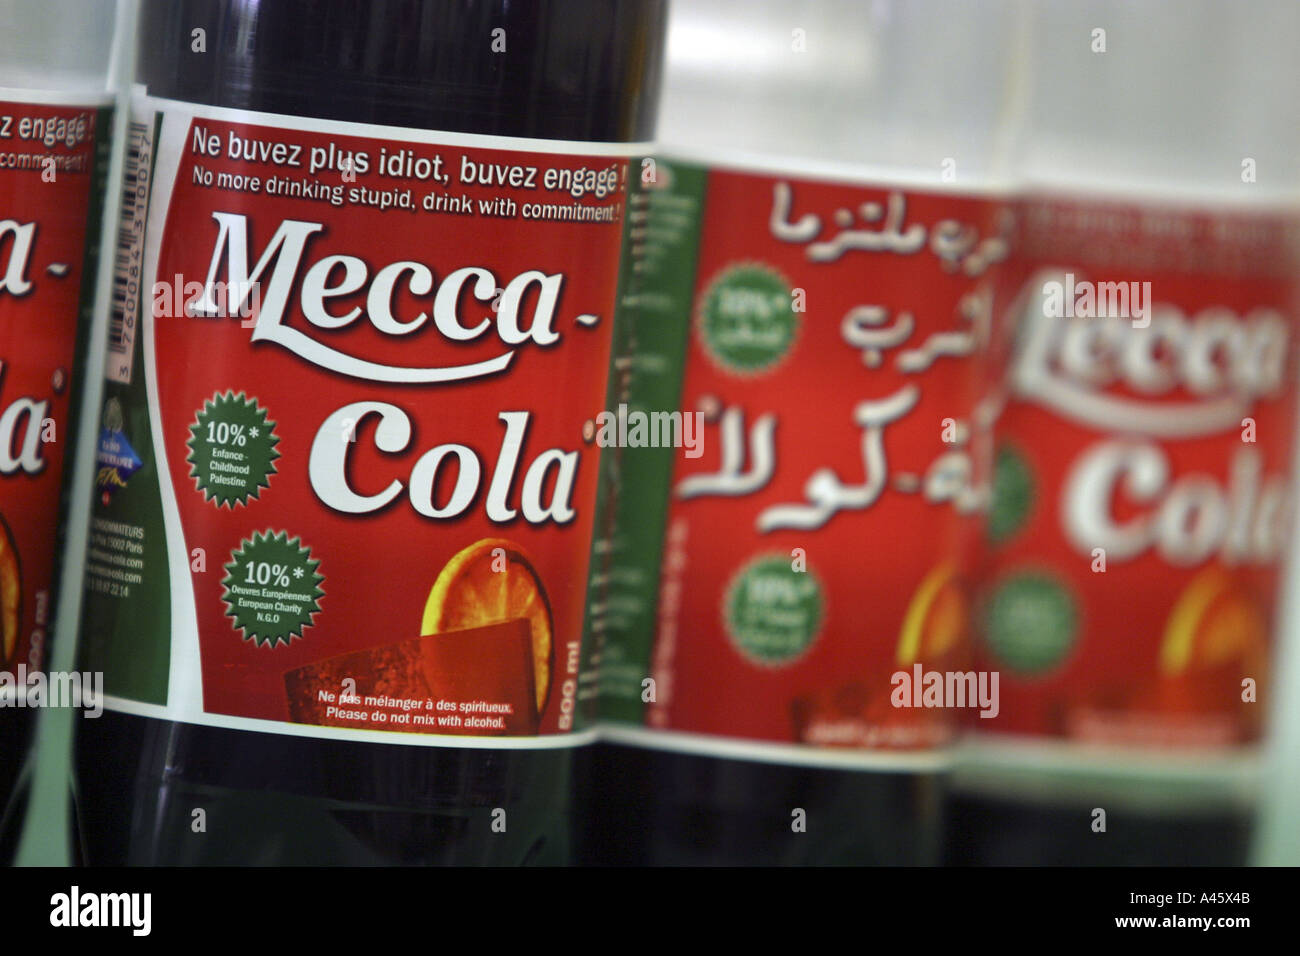 mecca cola business proposal Mecca cola uploaded by muhammad haris diet custard with diabetic and health conscious consumers  documents similar to mecca cola apk business plan marketing channel - ch-4- channel structure and intensity finaldocx.